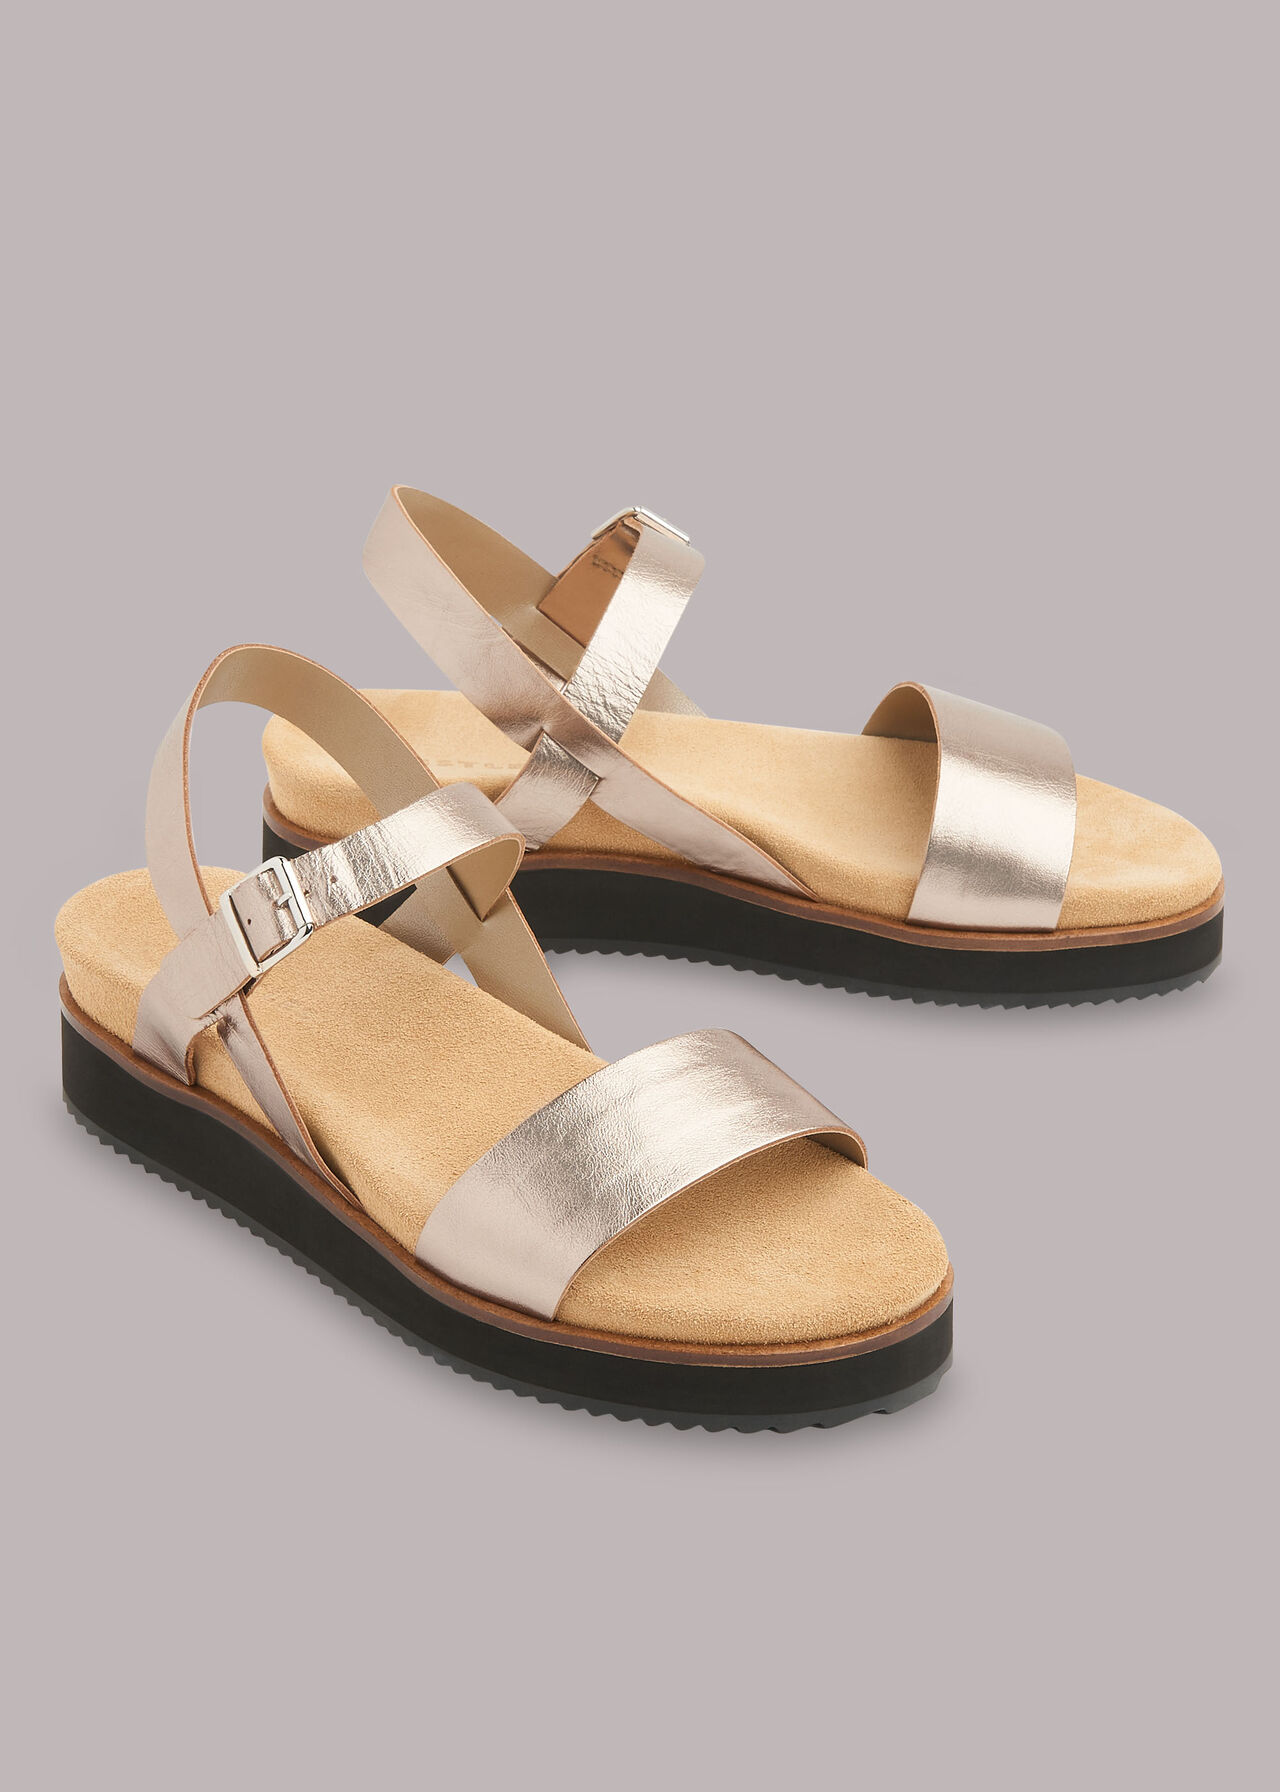 Nola Footbed Sandal